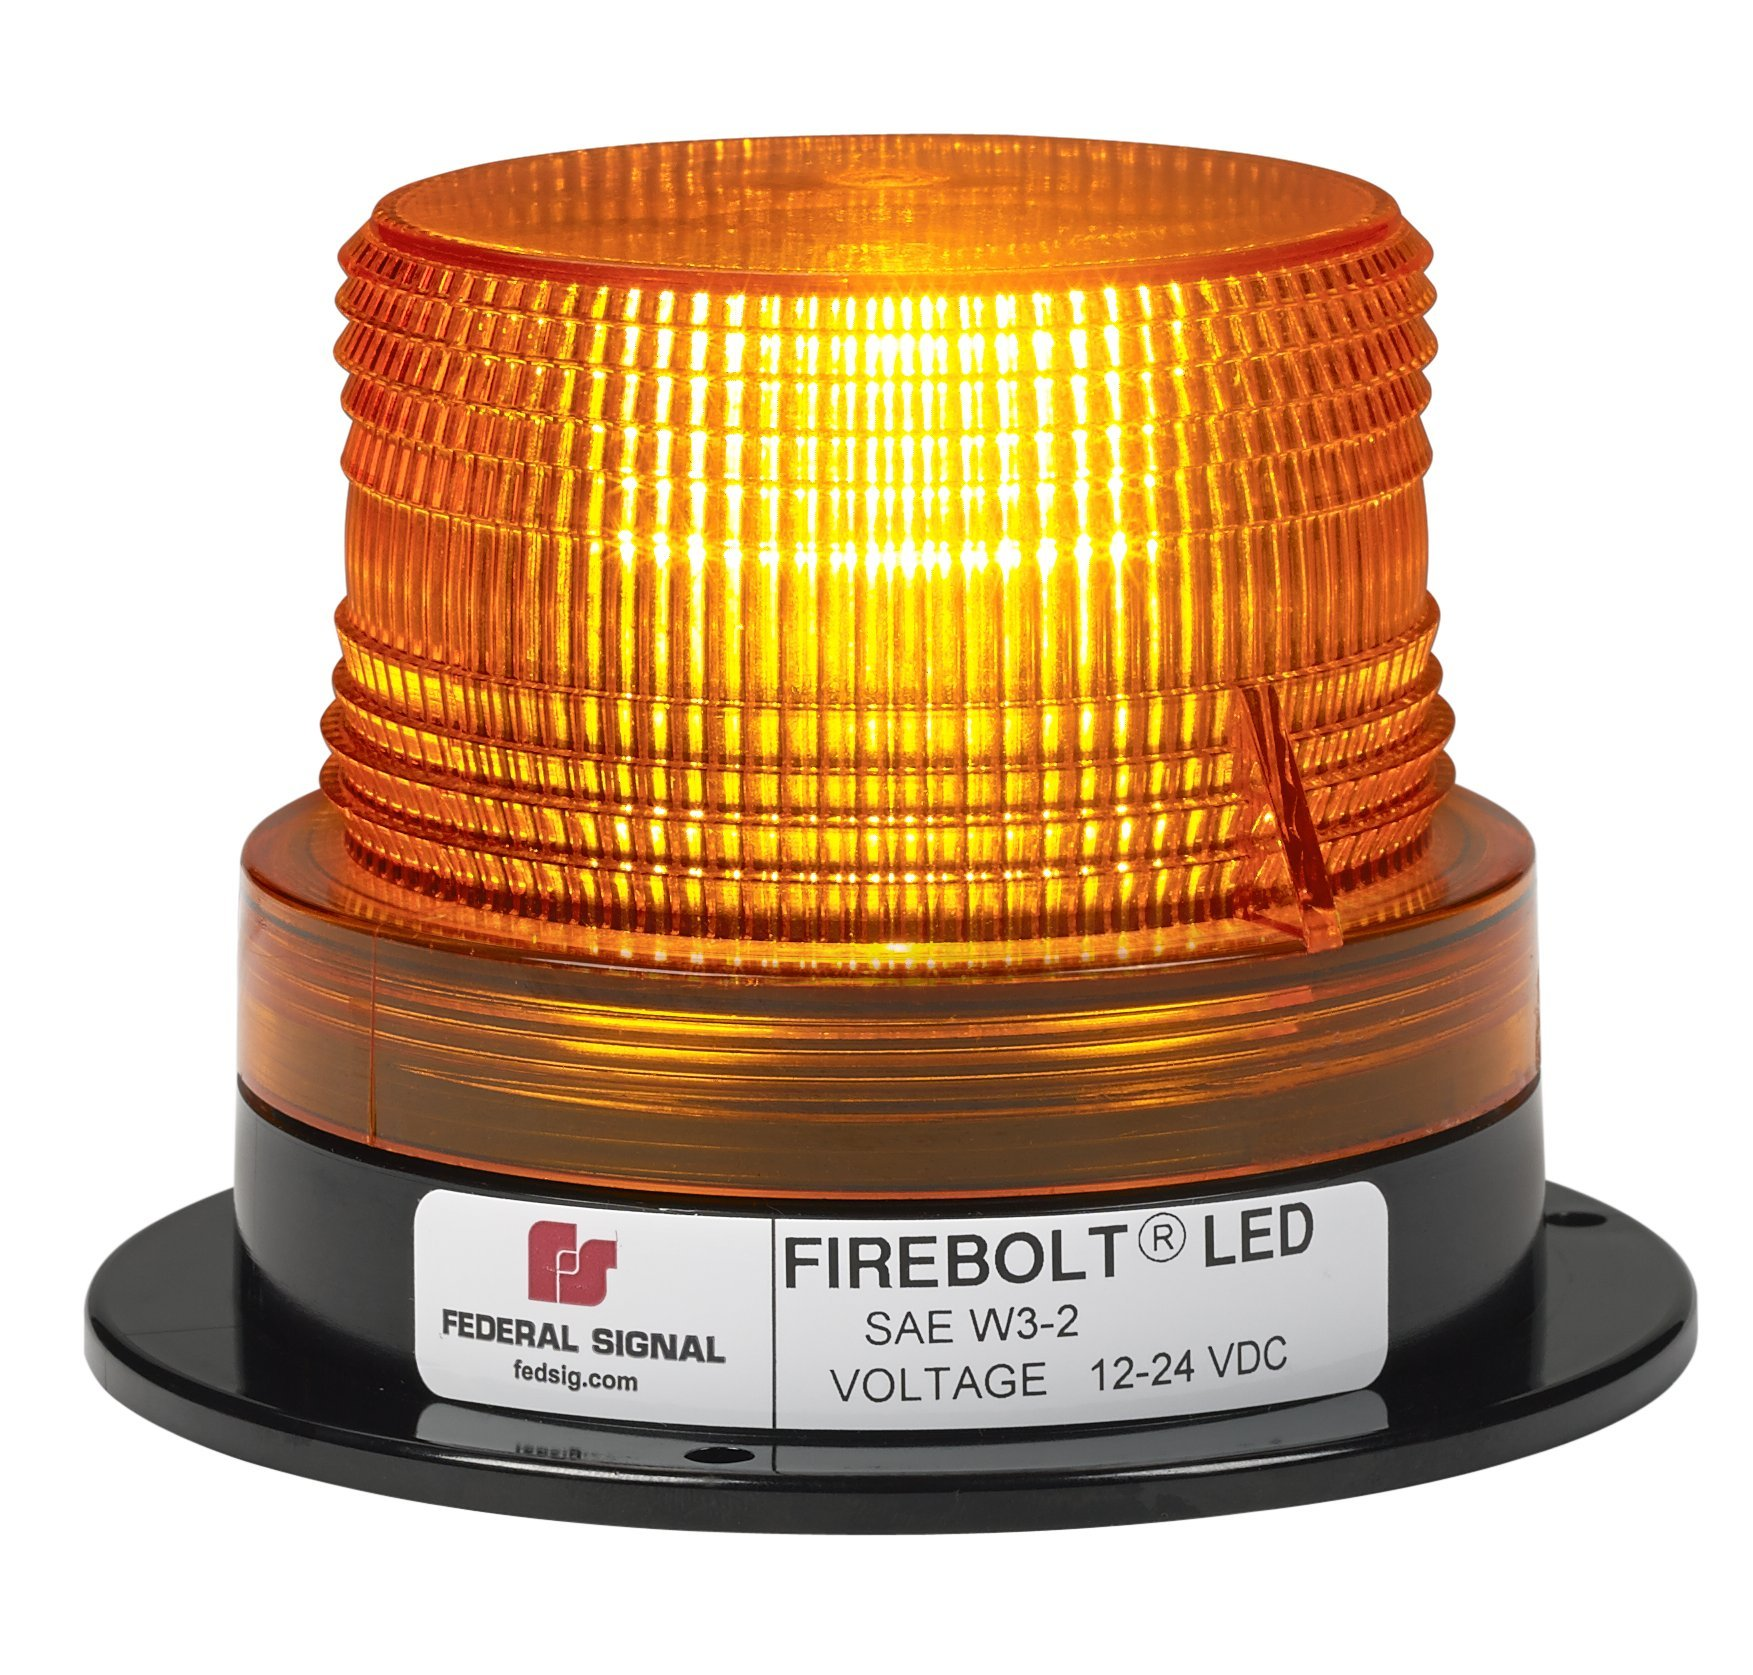 Federal Signal 220250-02 Firebolt LED Beacon, Class 2, Permanent Mount with Amber Dome by Federal Signal